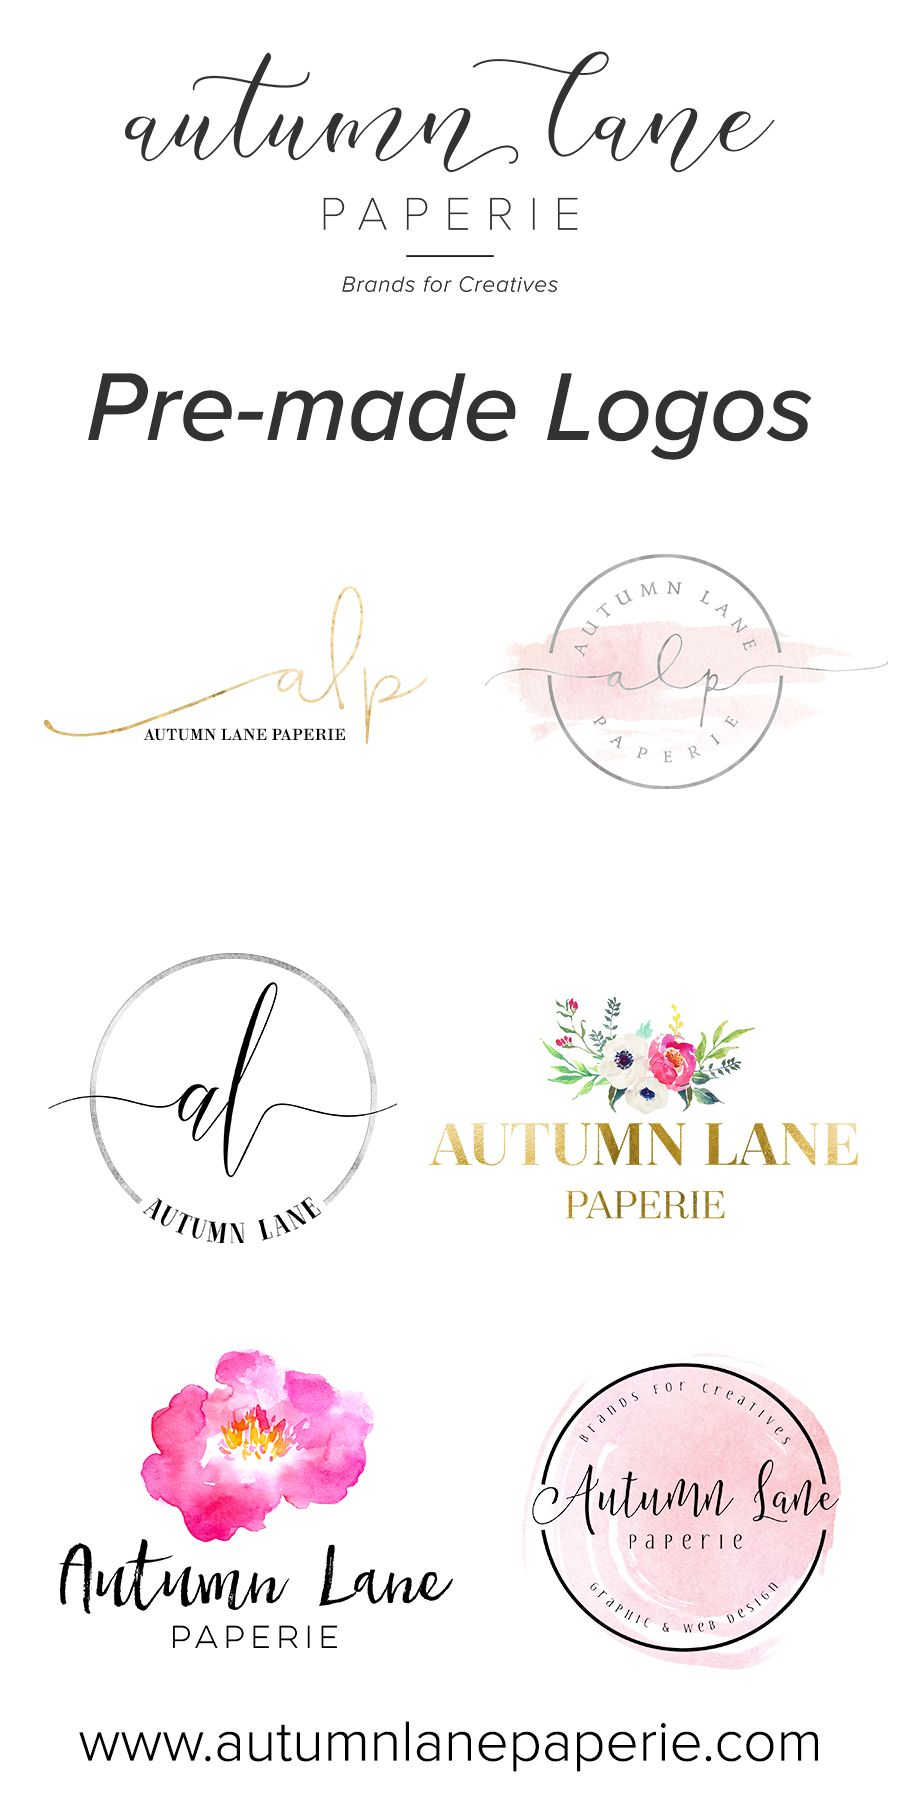 Autumn Lane Paperie specializes in brands & websites for